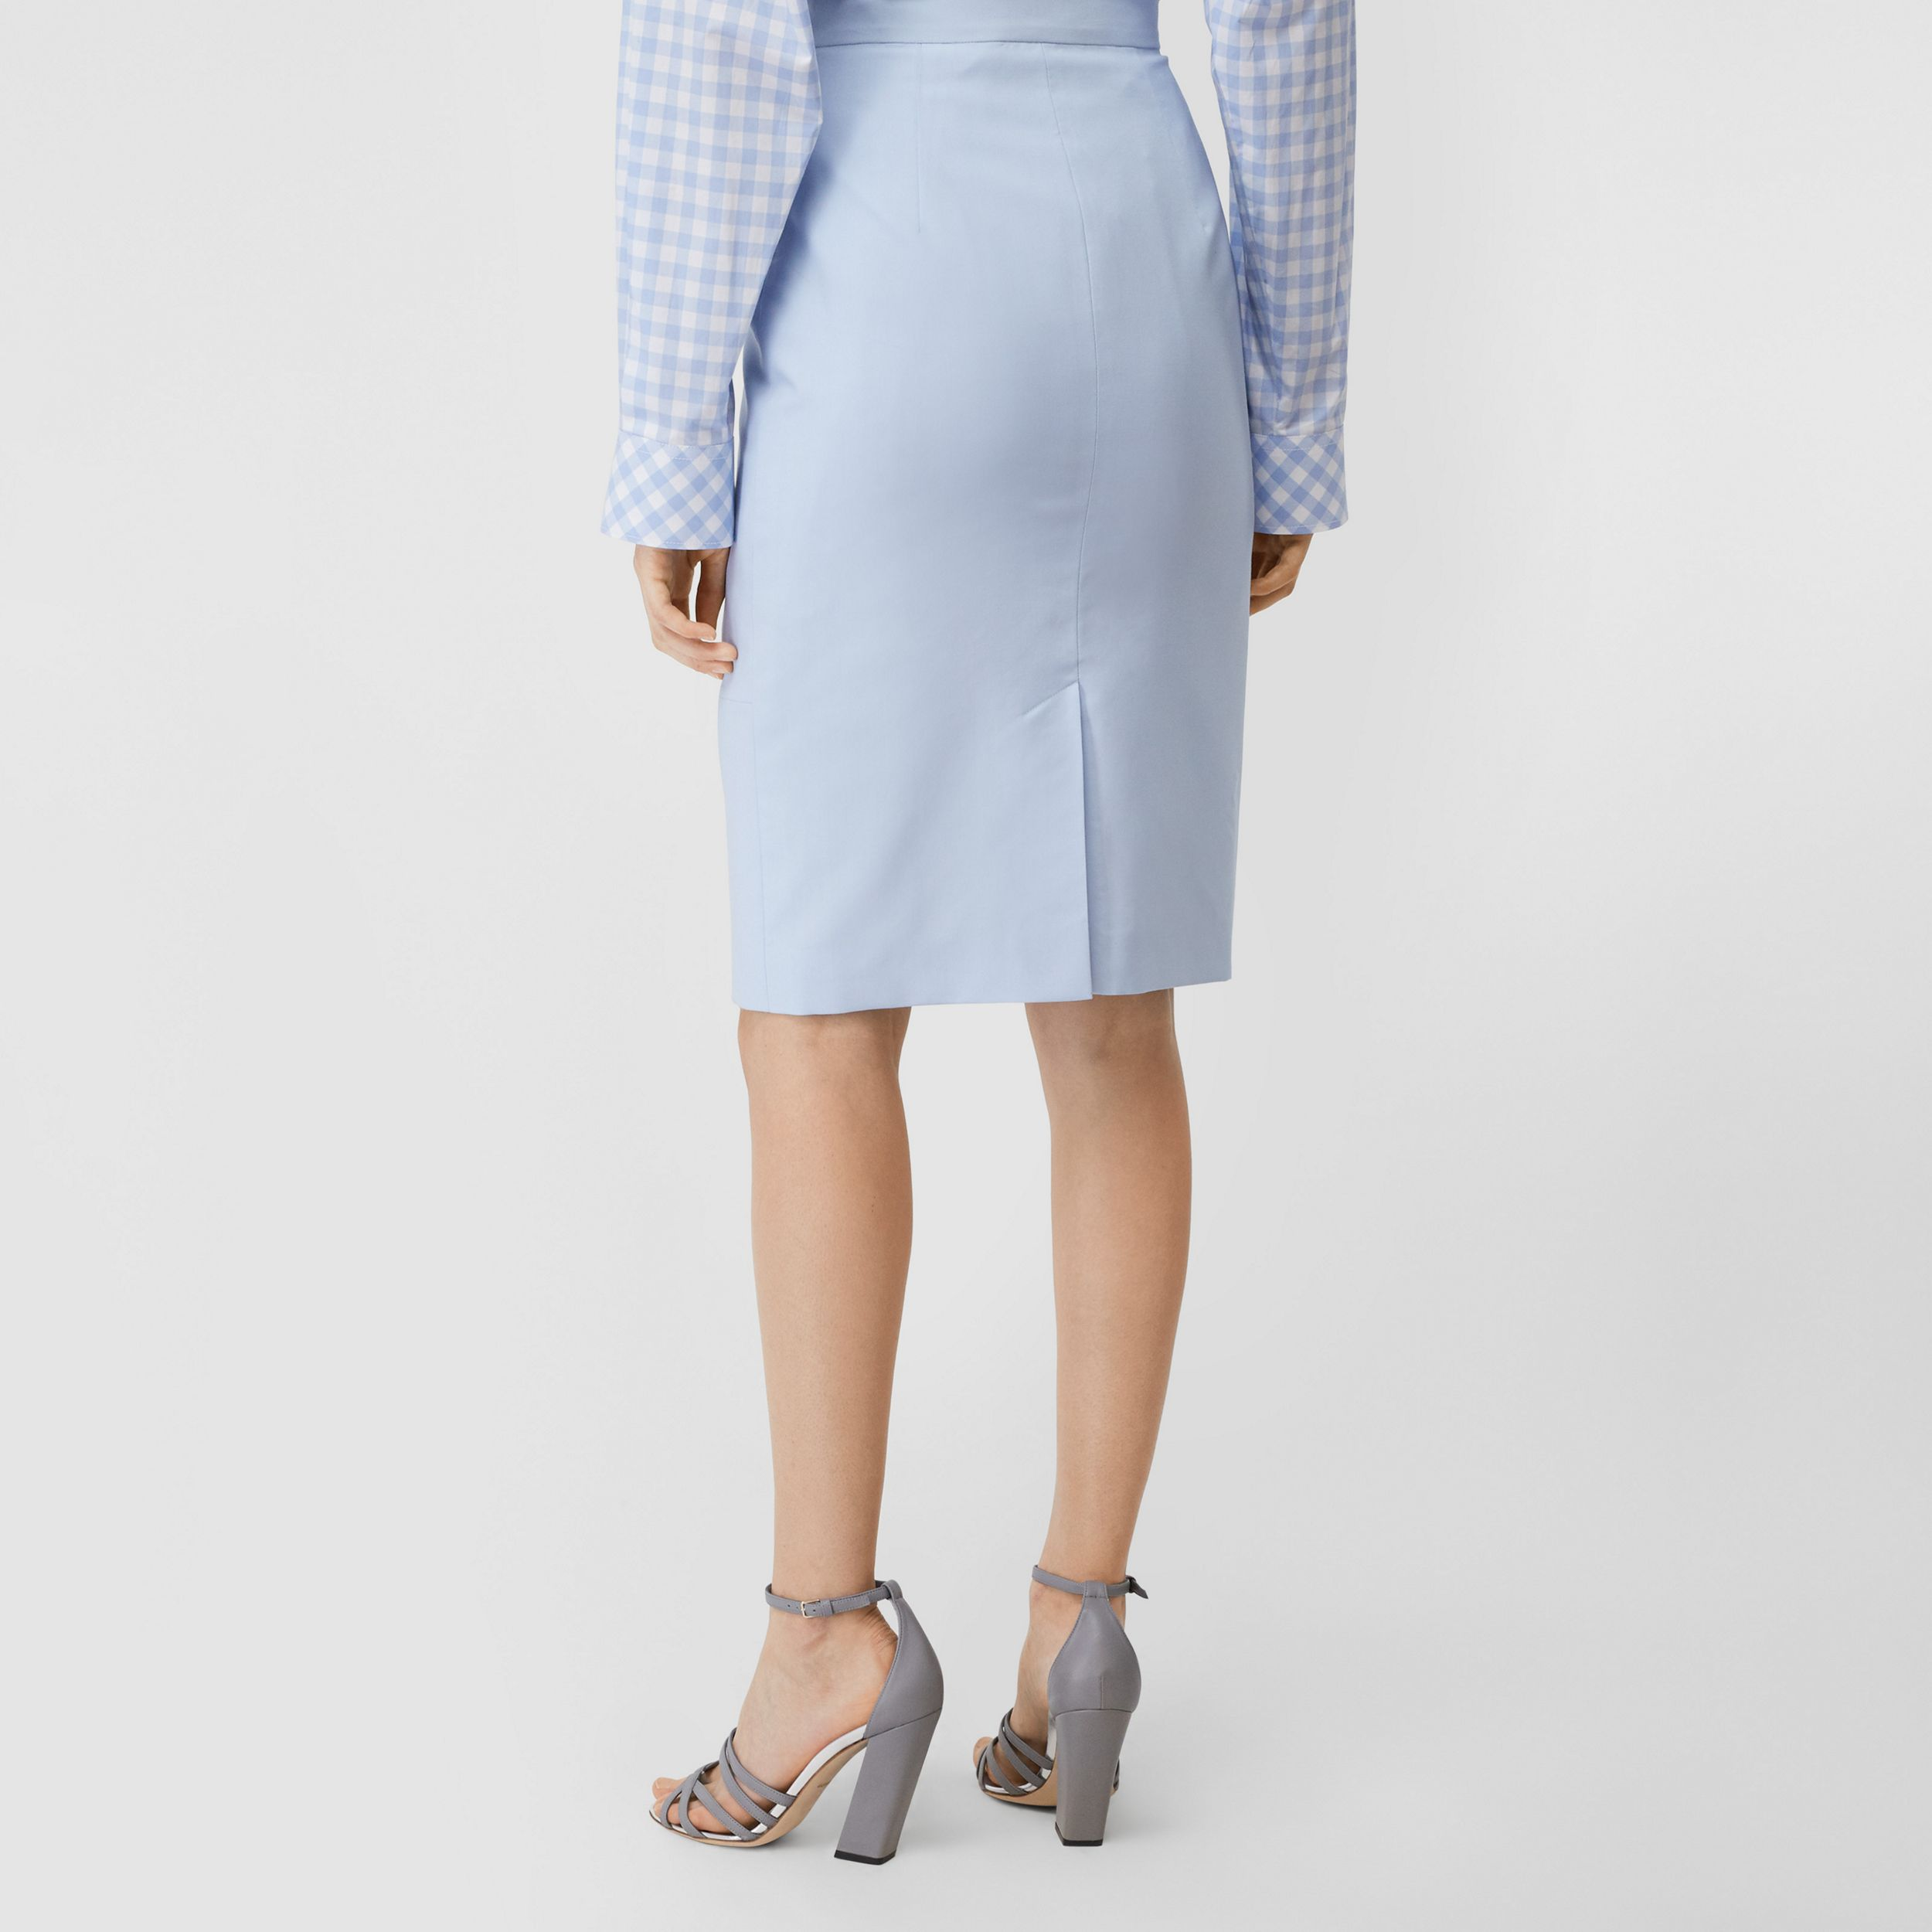 Wool Canvas Step-through Pencil Skirt in Pale Blue - Women | Burberry - 3